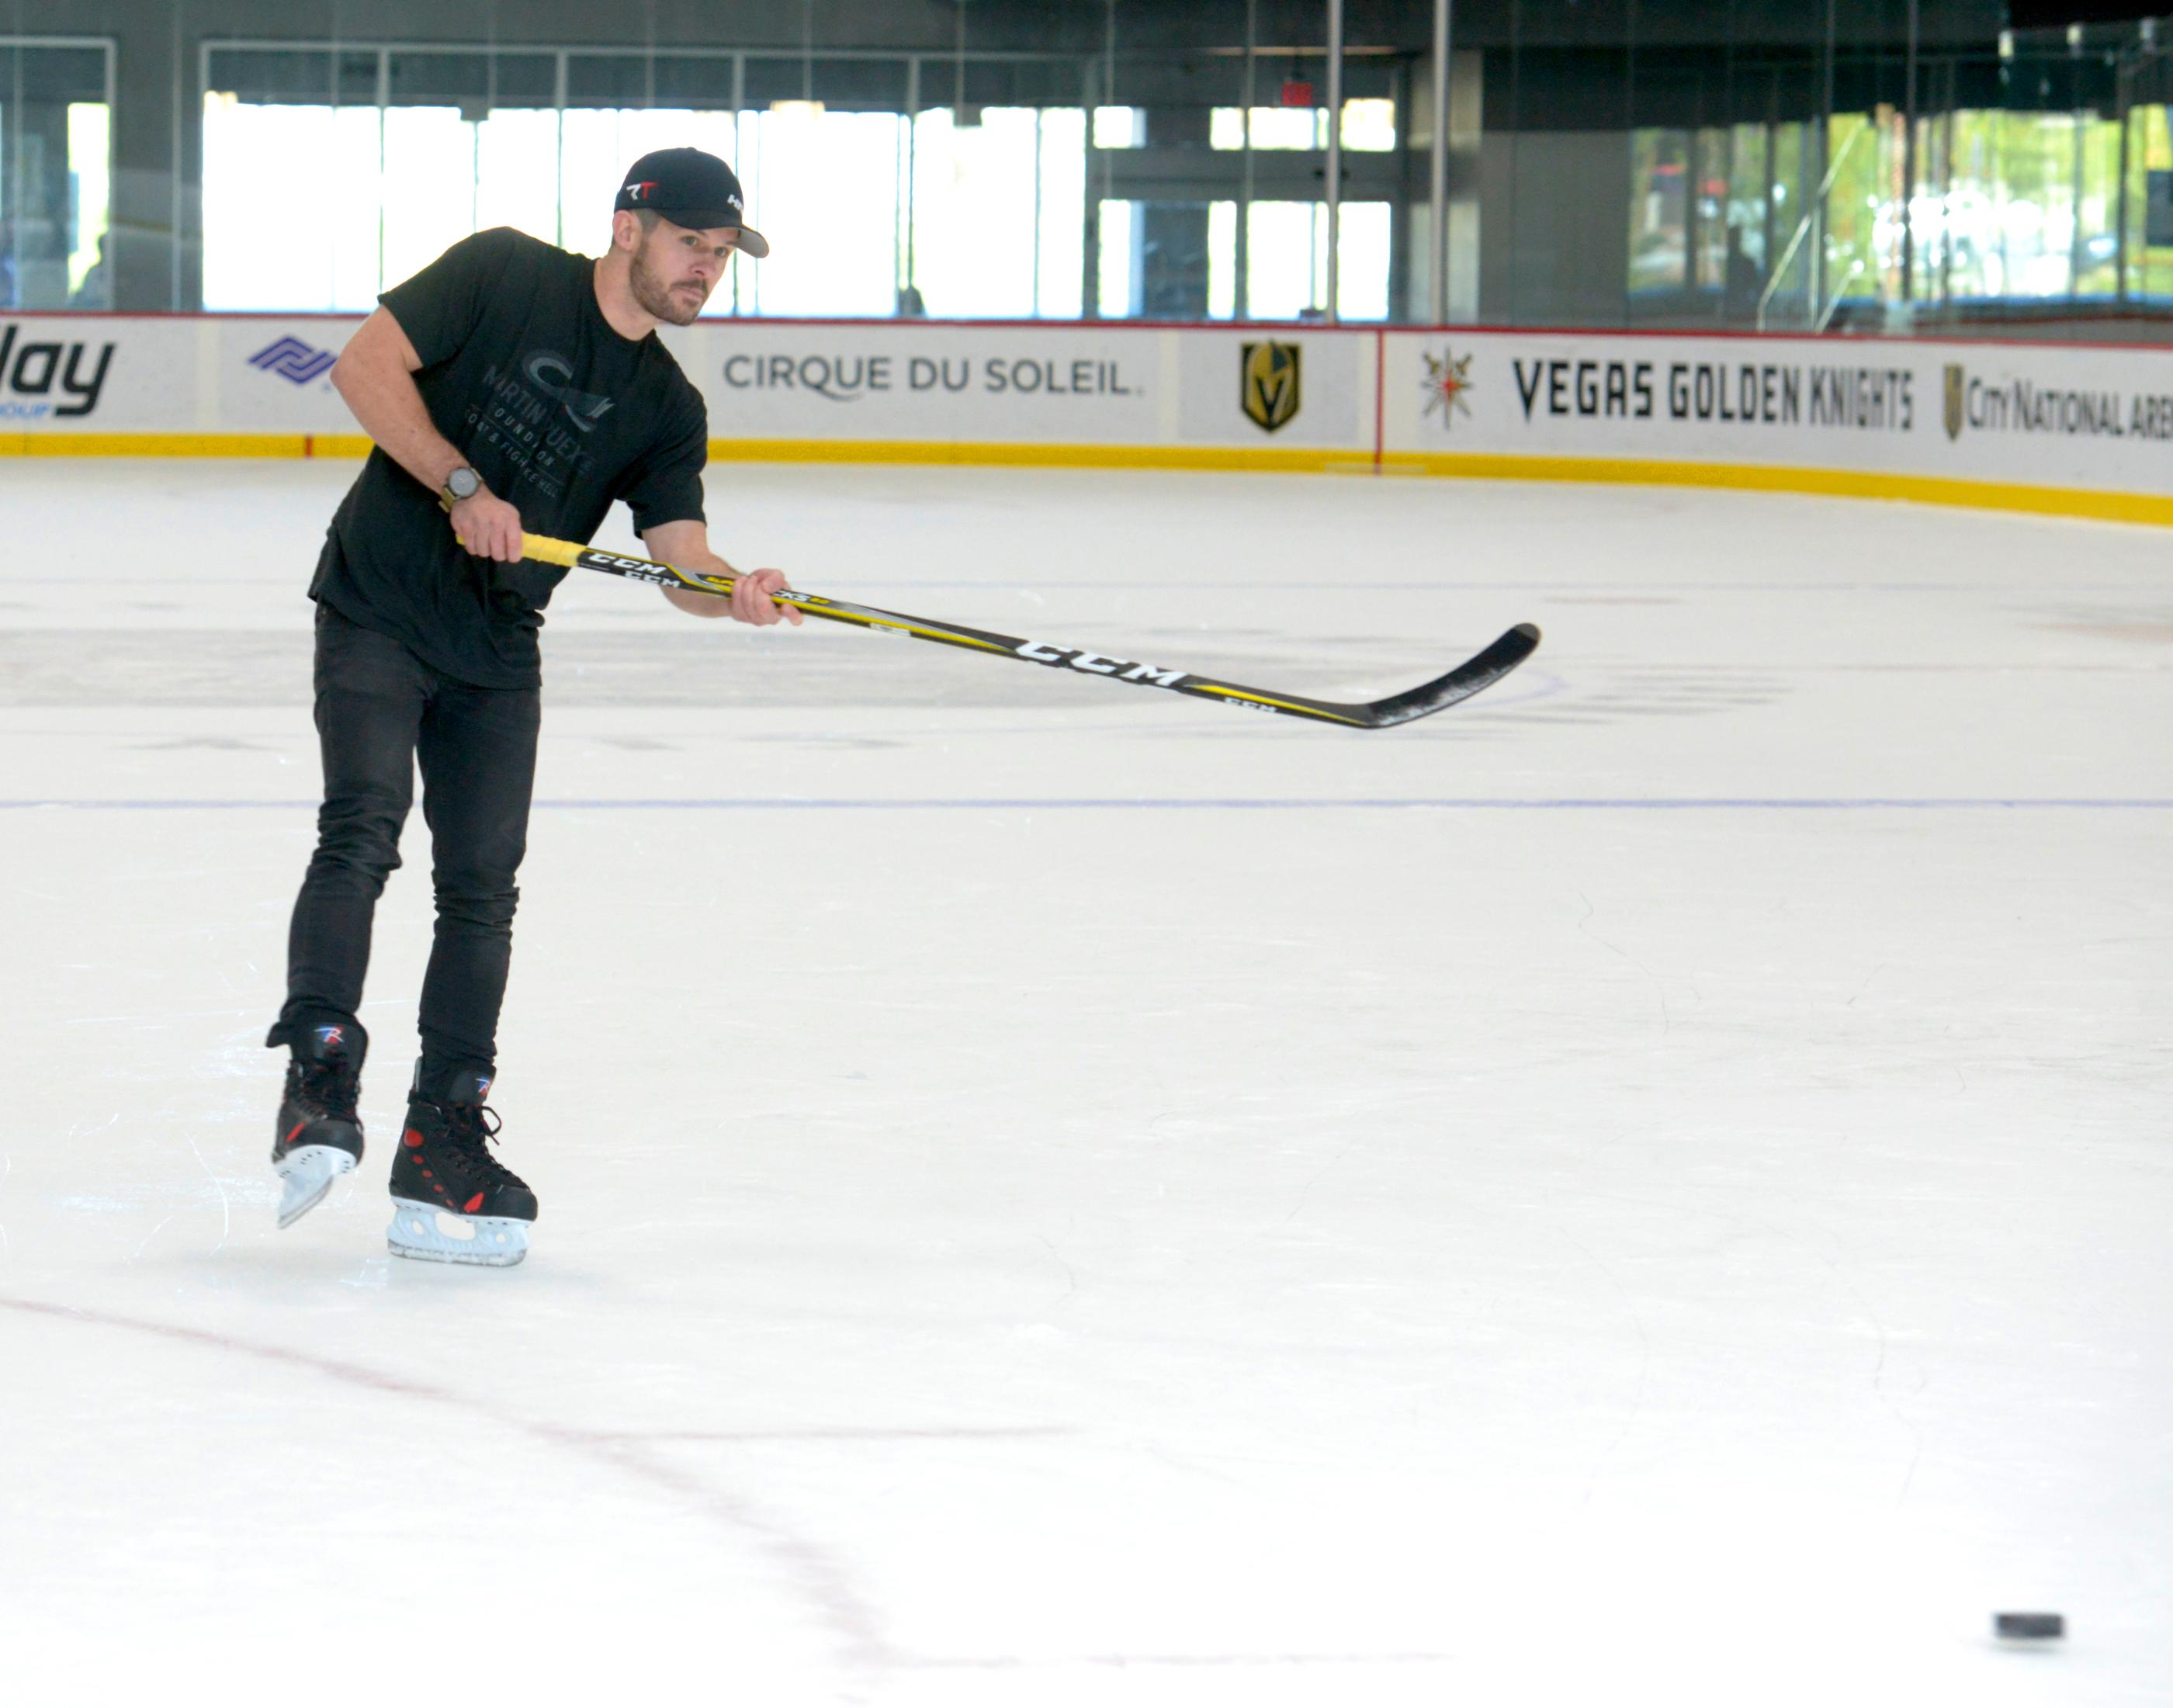 Ryan Truex NASCAR Camping World Truck Series (NCWTS) driver is interviewed during  a hockey skills clinic at City National Arena. Friday, September 29, 2017. CREDIT: Glenn Pinkerton/Las Vegas News Bureau